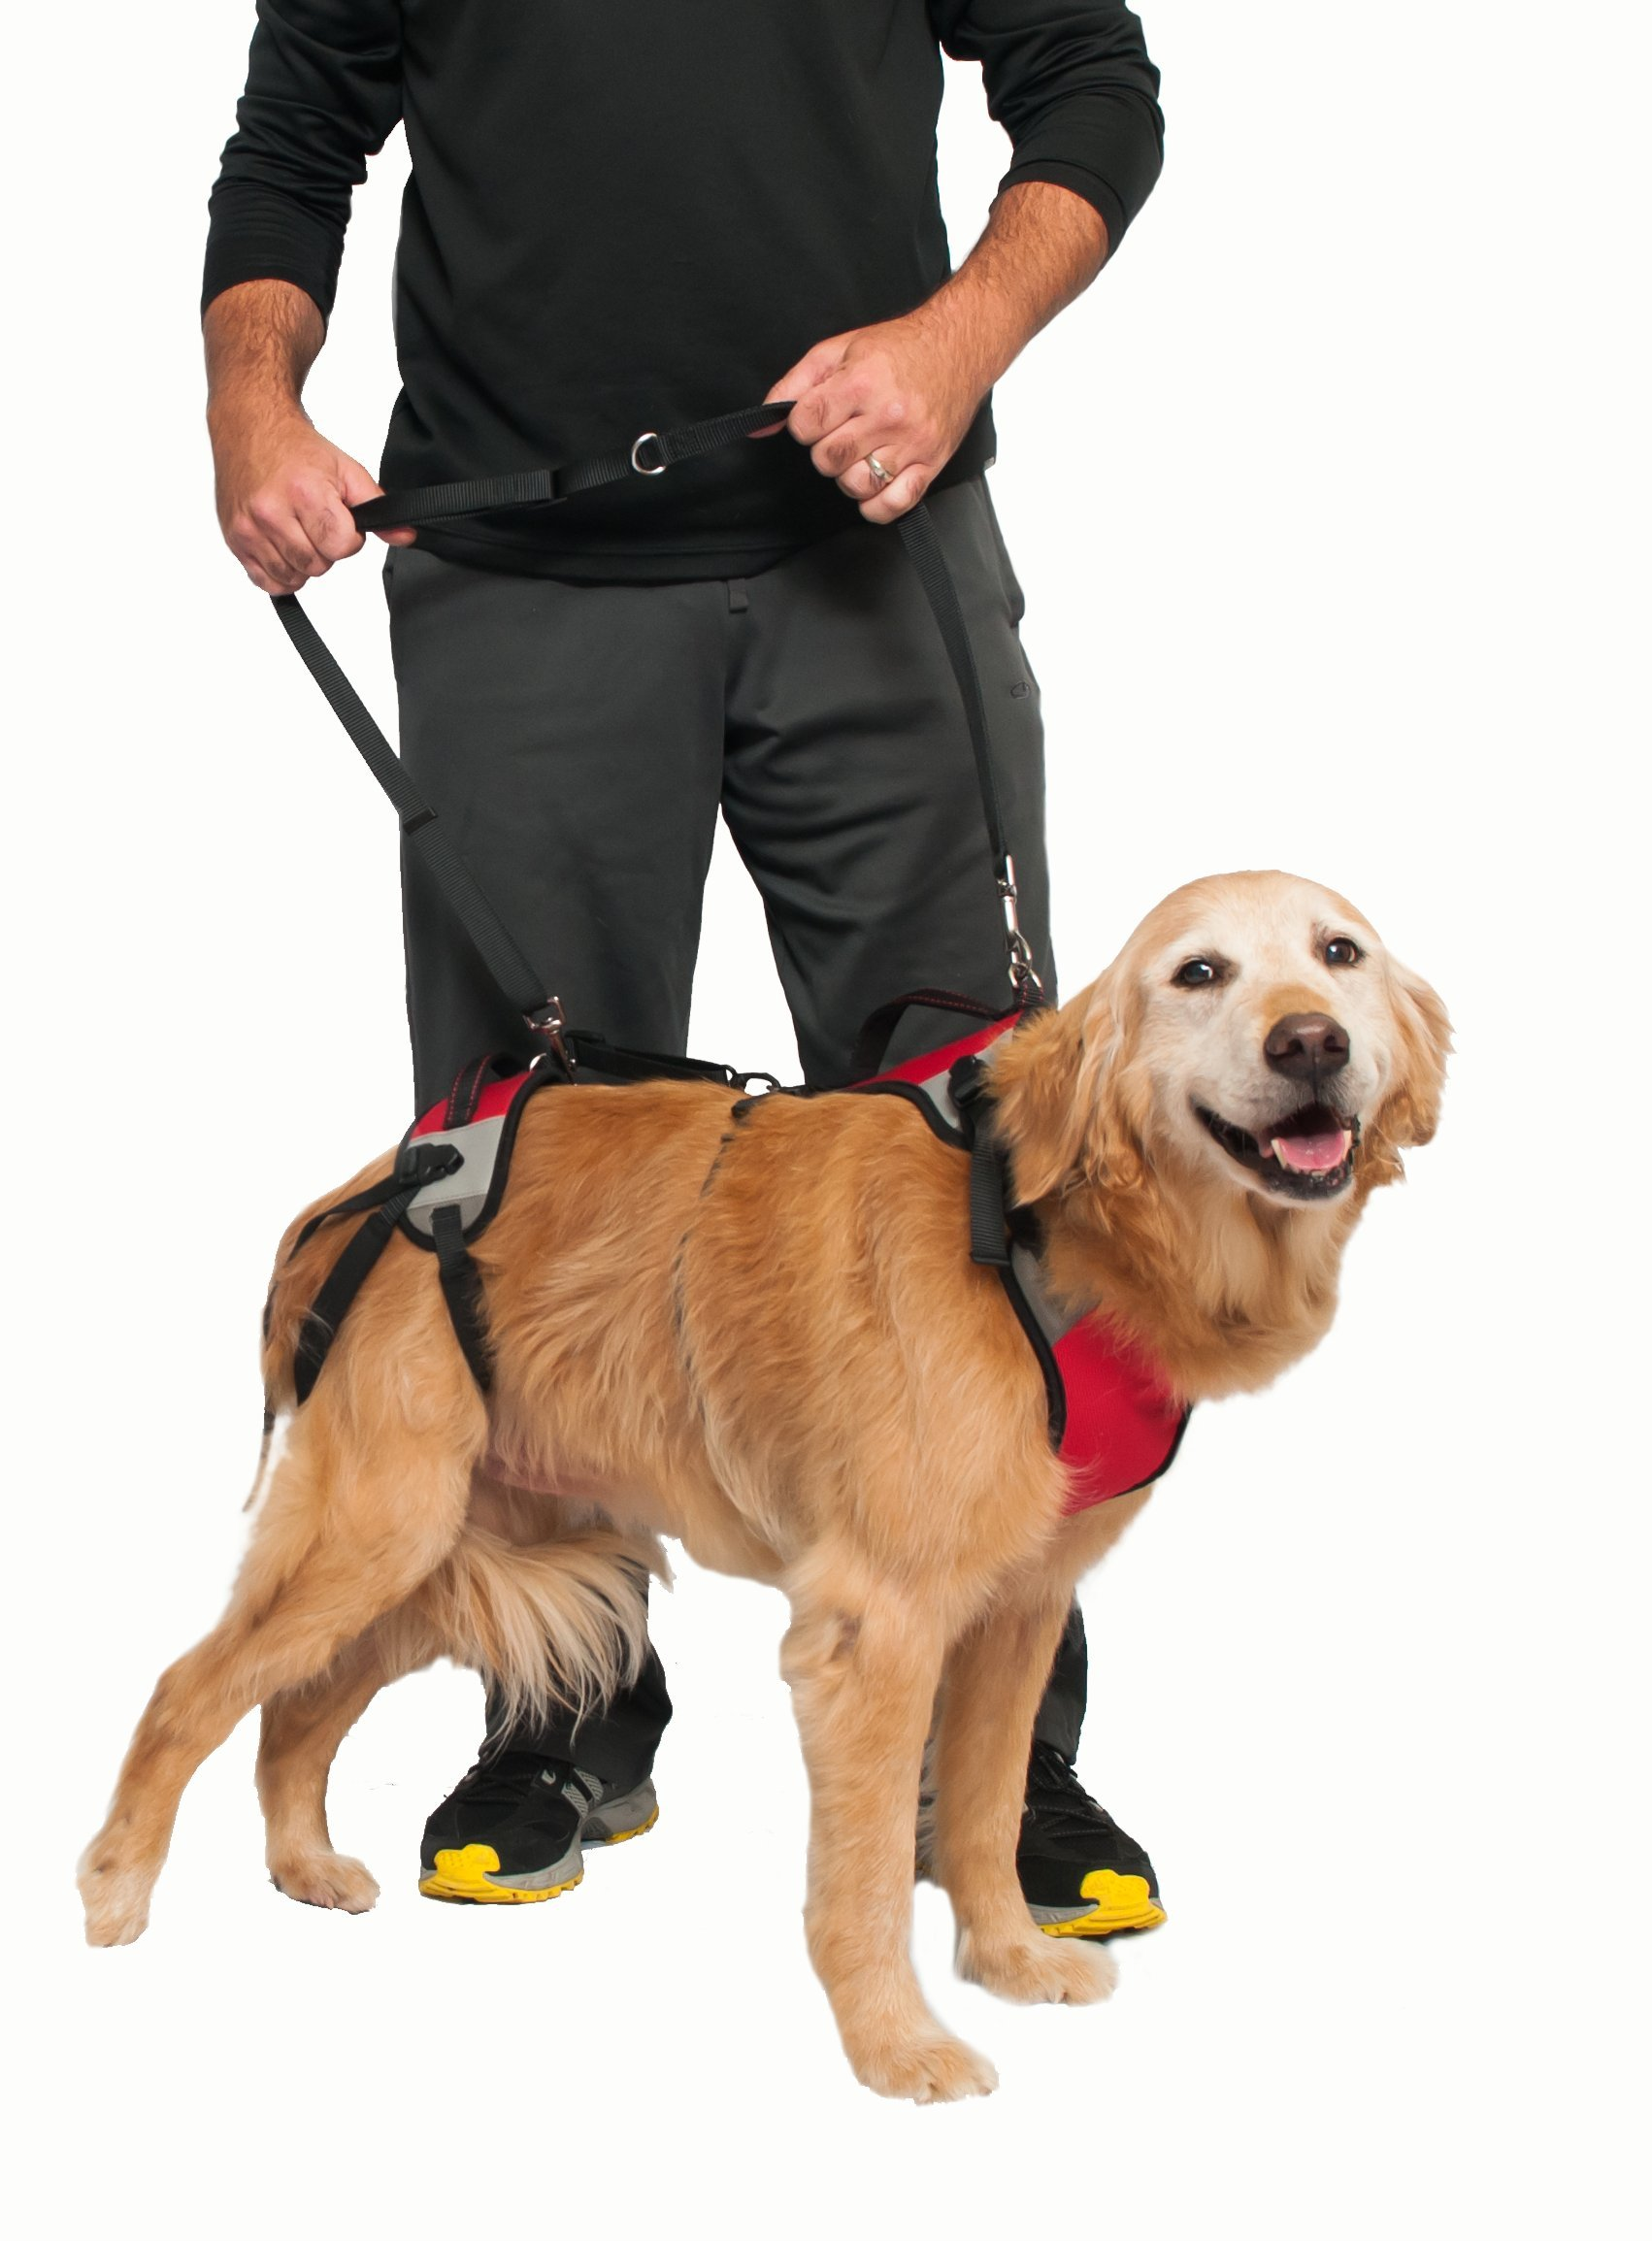 TopDog Health– The Ultimate Support Harness for Dogs (T.U.S.H) – Small - Helps Supports Older Dogs Struggling to Get Around or Dogs Recovering from Surgery – Created by a Veterinarian